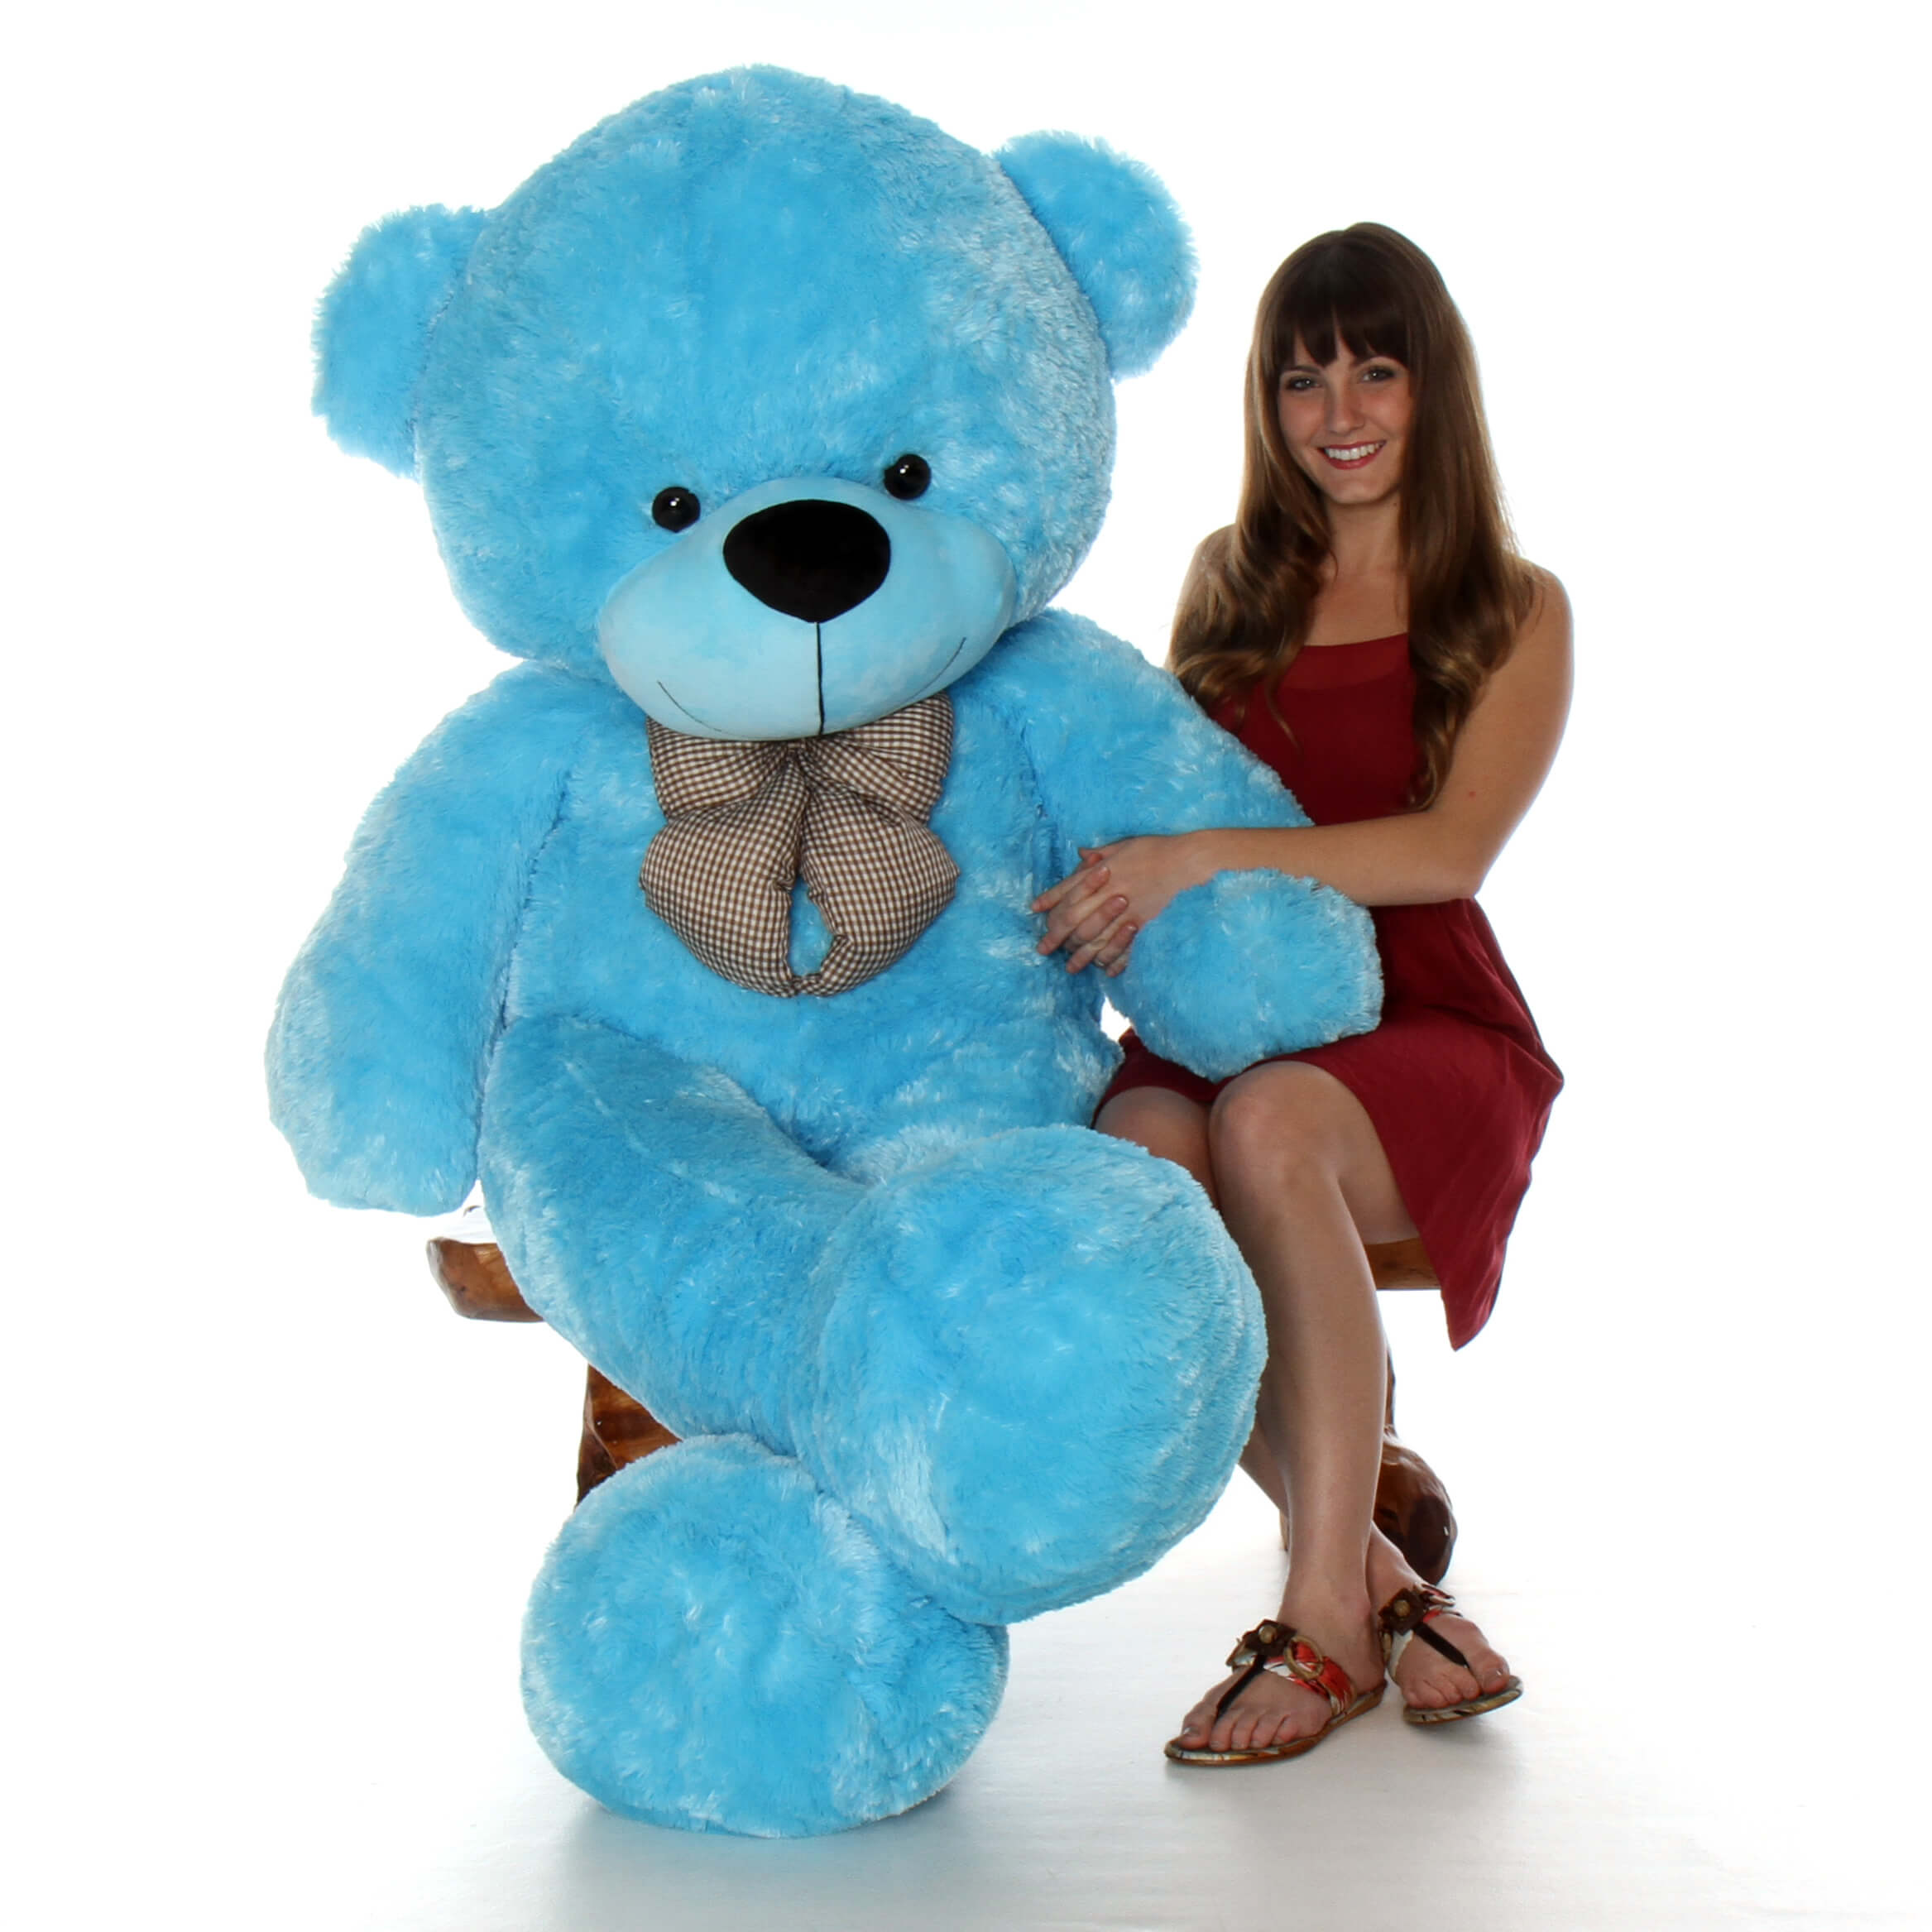 life-size-blue-teddy-bear-happy-cuddles-72in-1.jpg